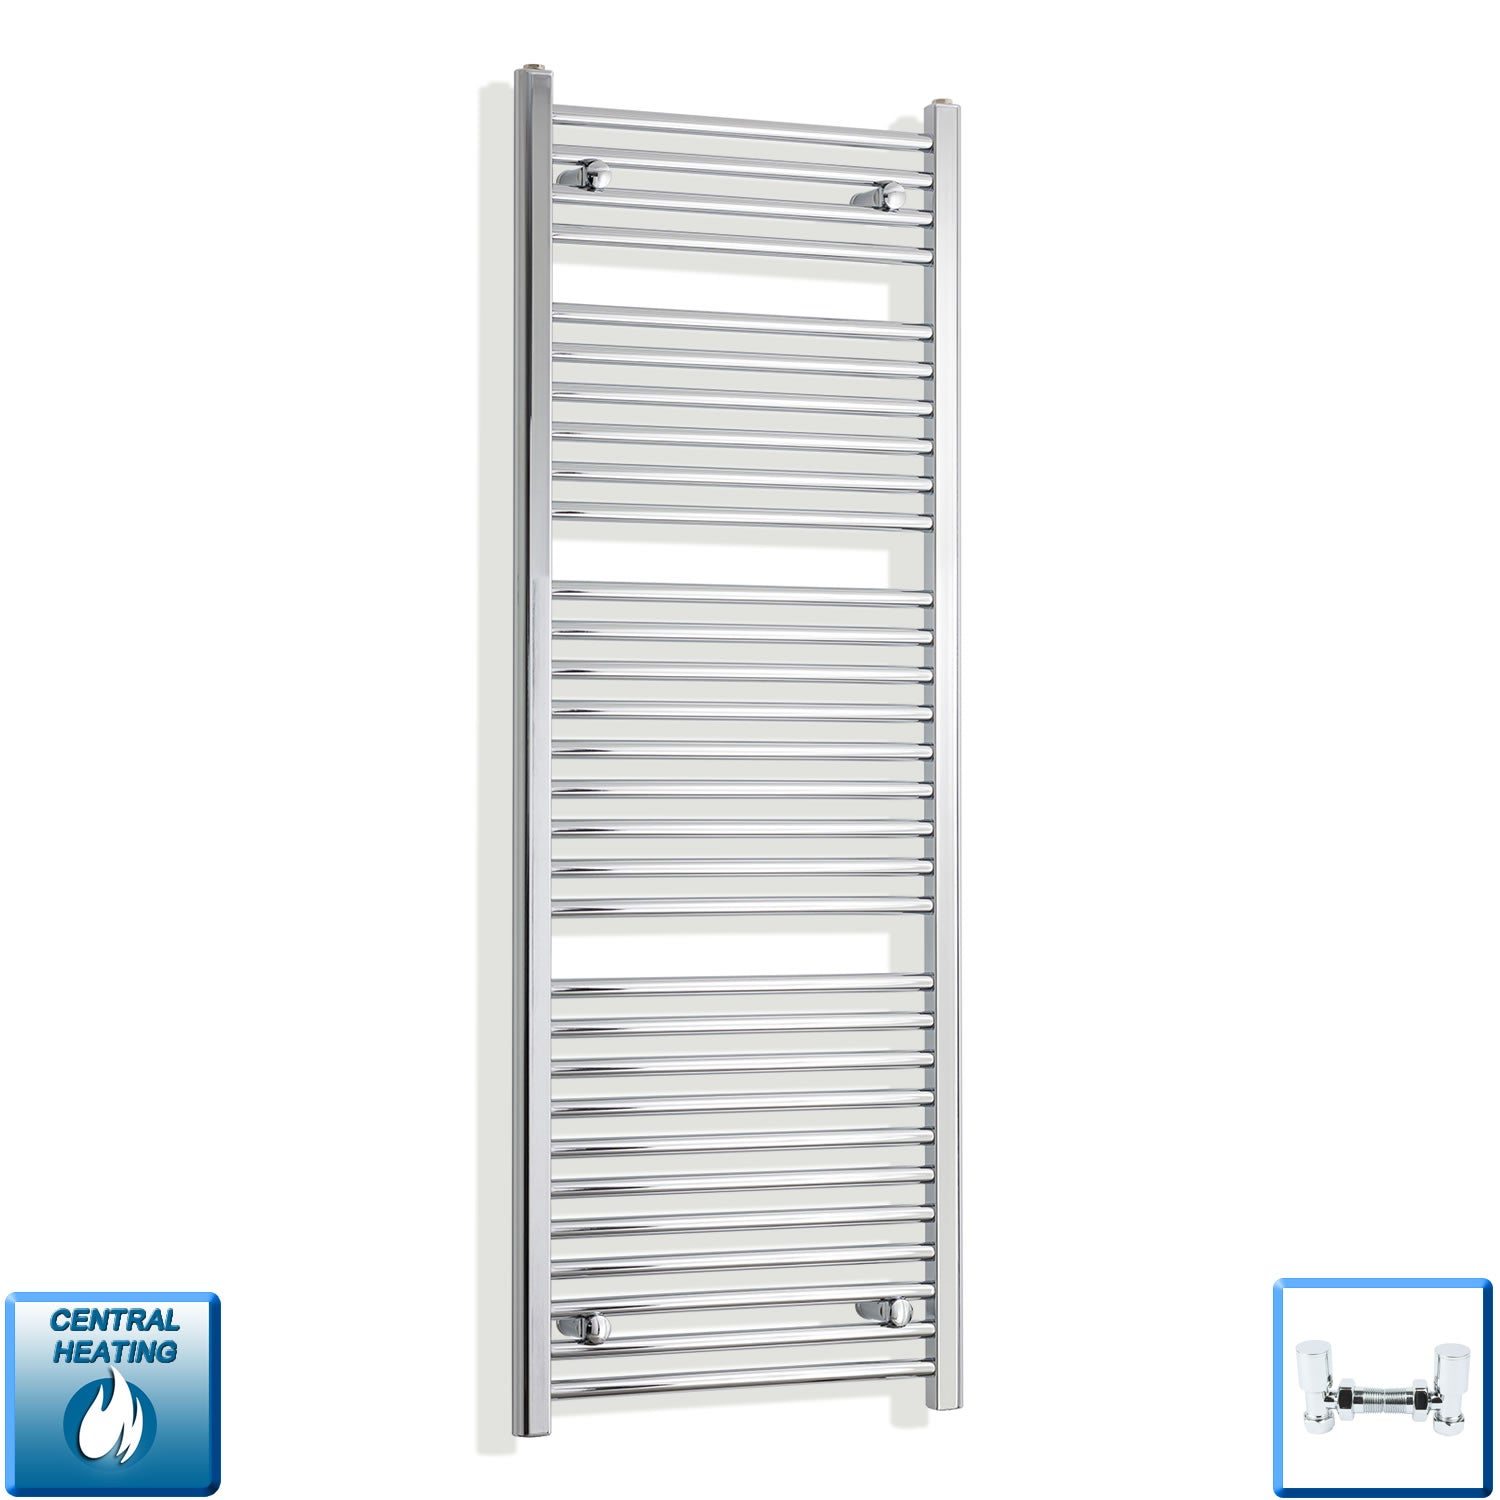 550mm Wide 1500mm High Chrome Towel Rail Radiator With Angled Valve